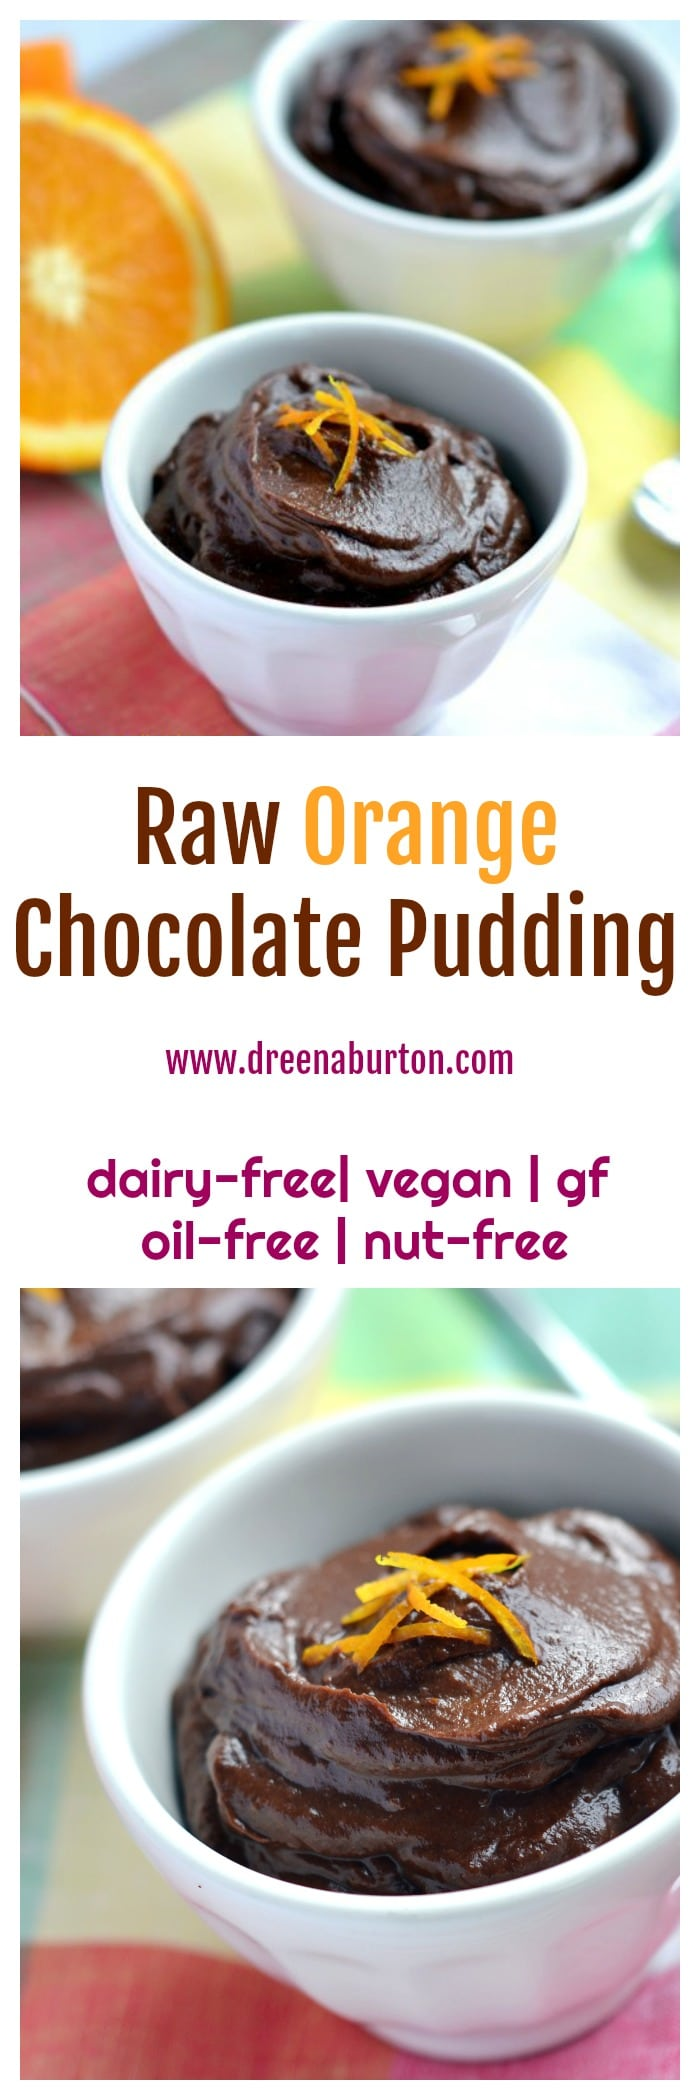 Raw Orange Chocolate Pudding! Make in MINUTES! No added sugar, vegan and oil-free, nut-free and gluten-free. Delicious!